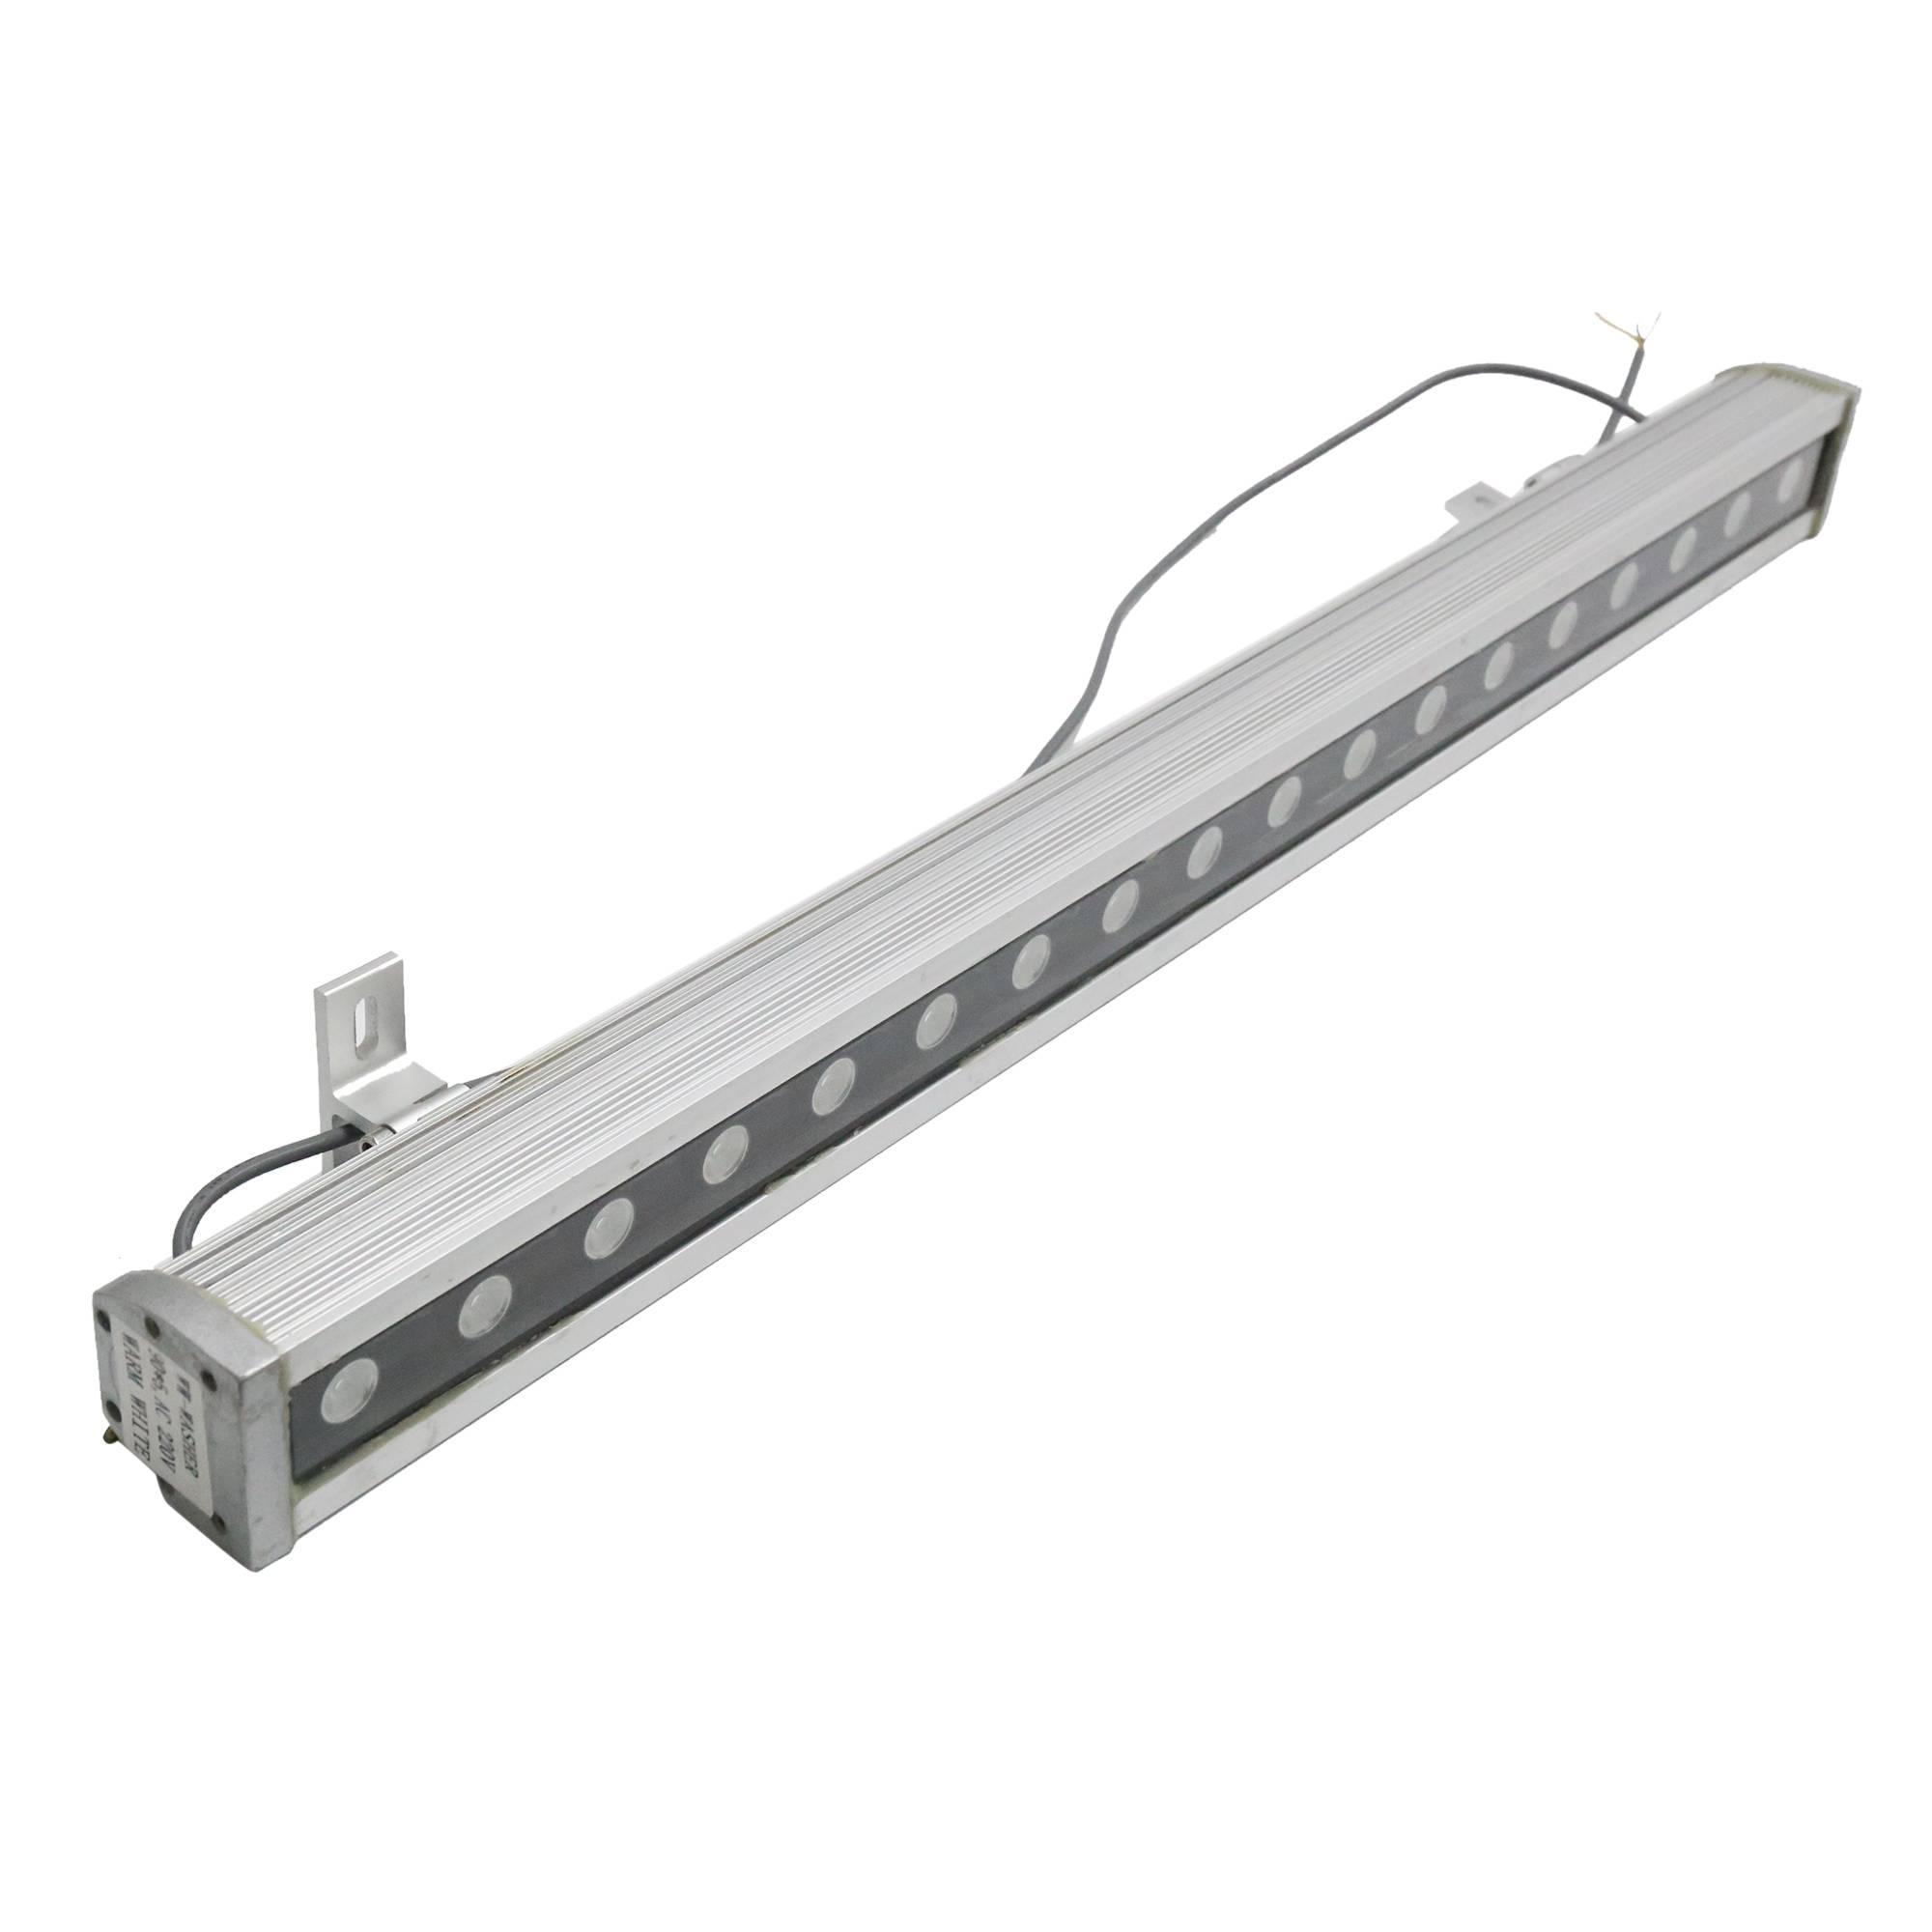 Best Price onDmx Winch -